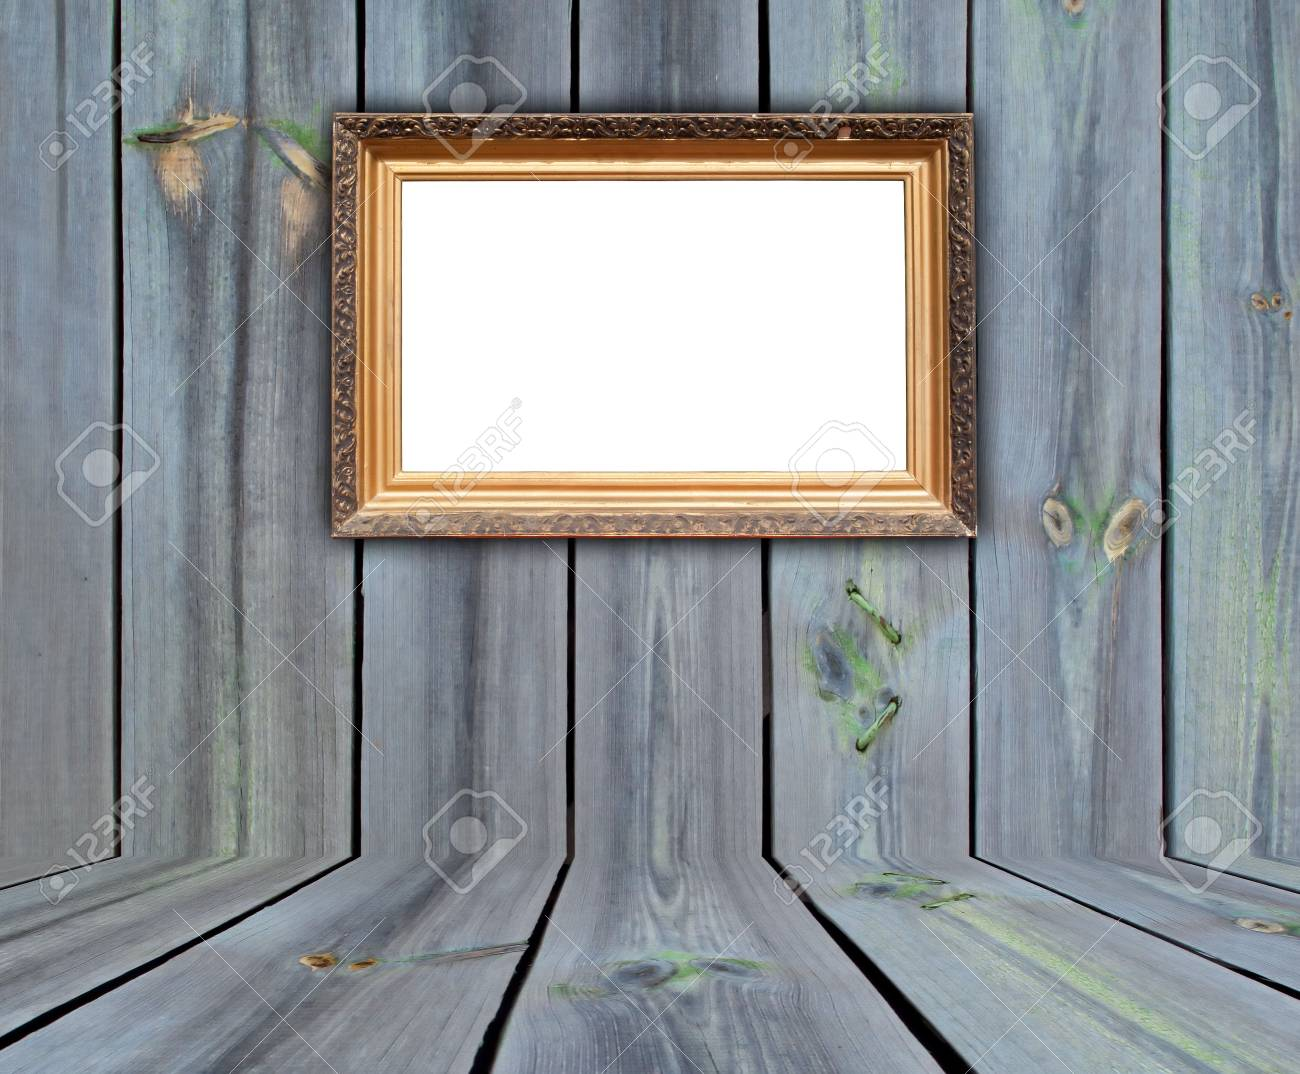 Vintage Frame in Wooden Room Stock Photo - 6702096